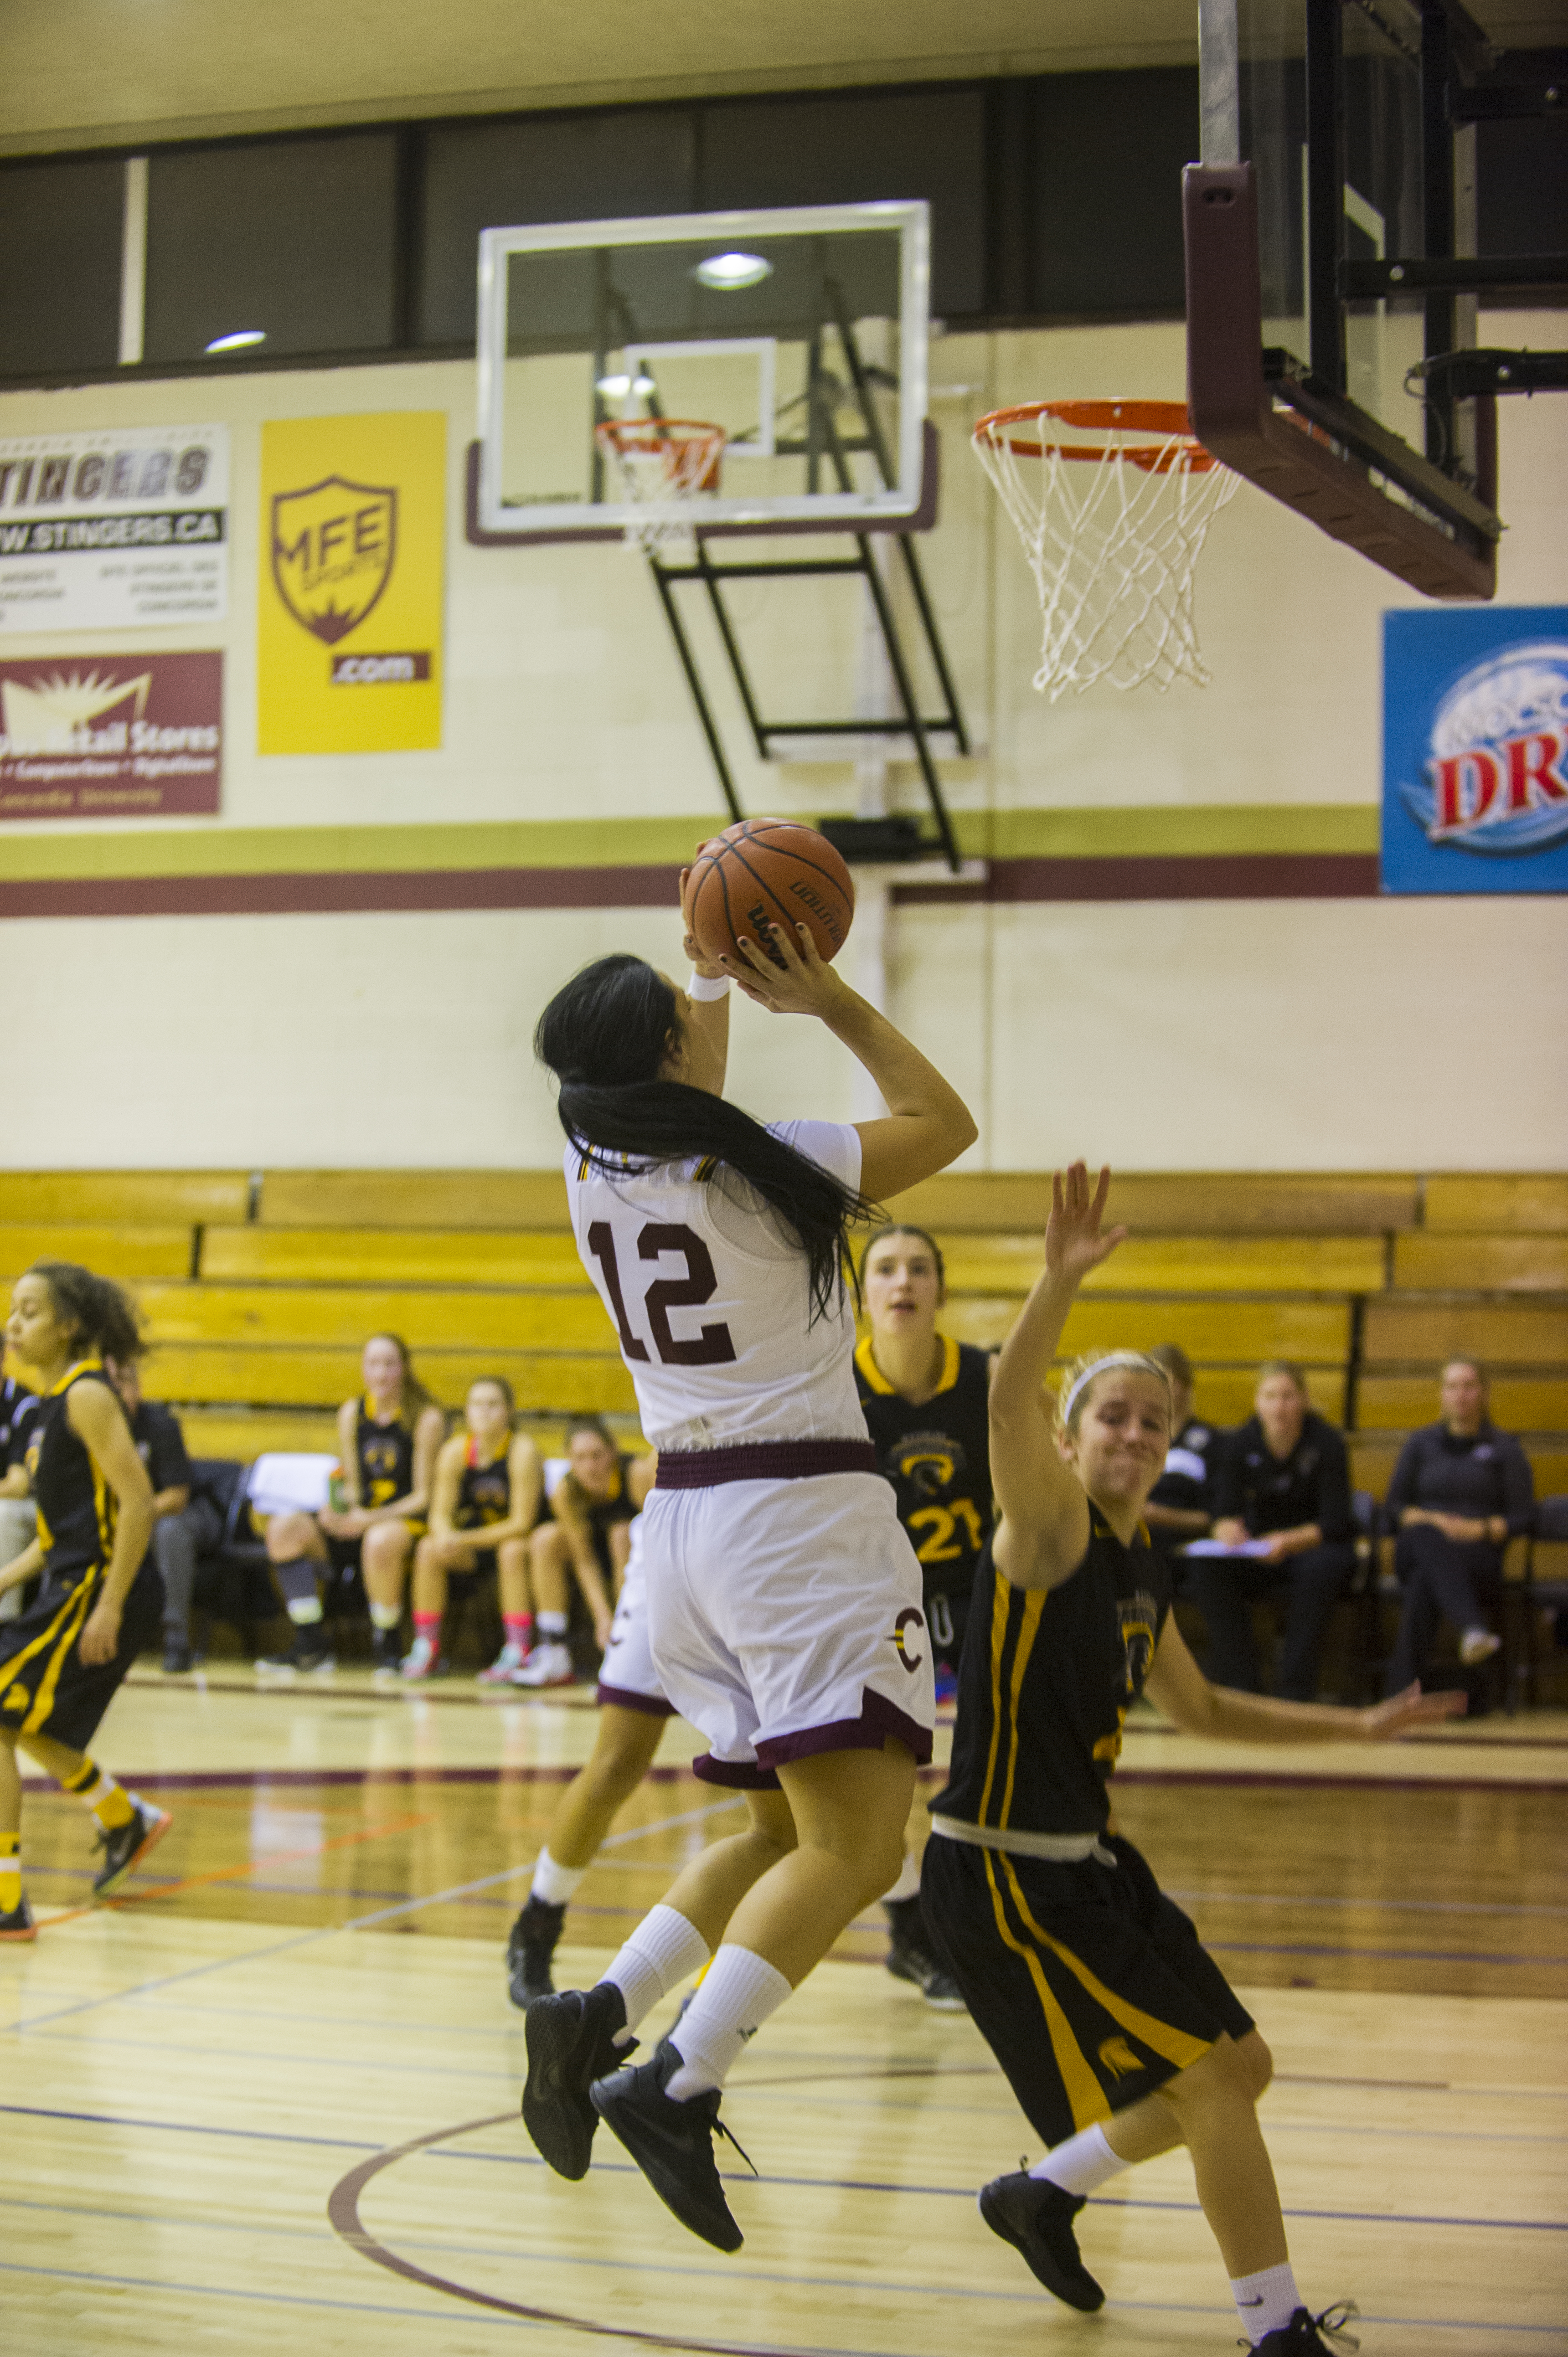 Stingers forward Richelle Grégoire goes up against a Waterloo defender for a basket. Photo by Andrej Ivanov.